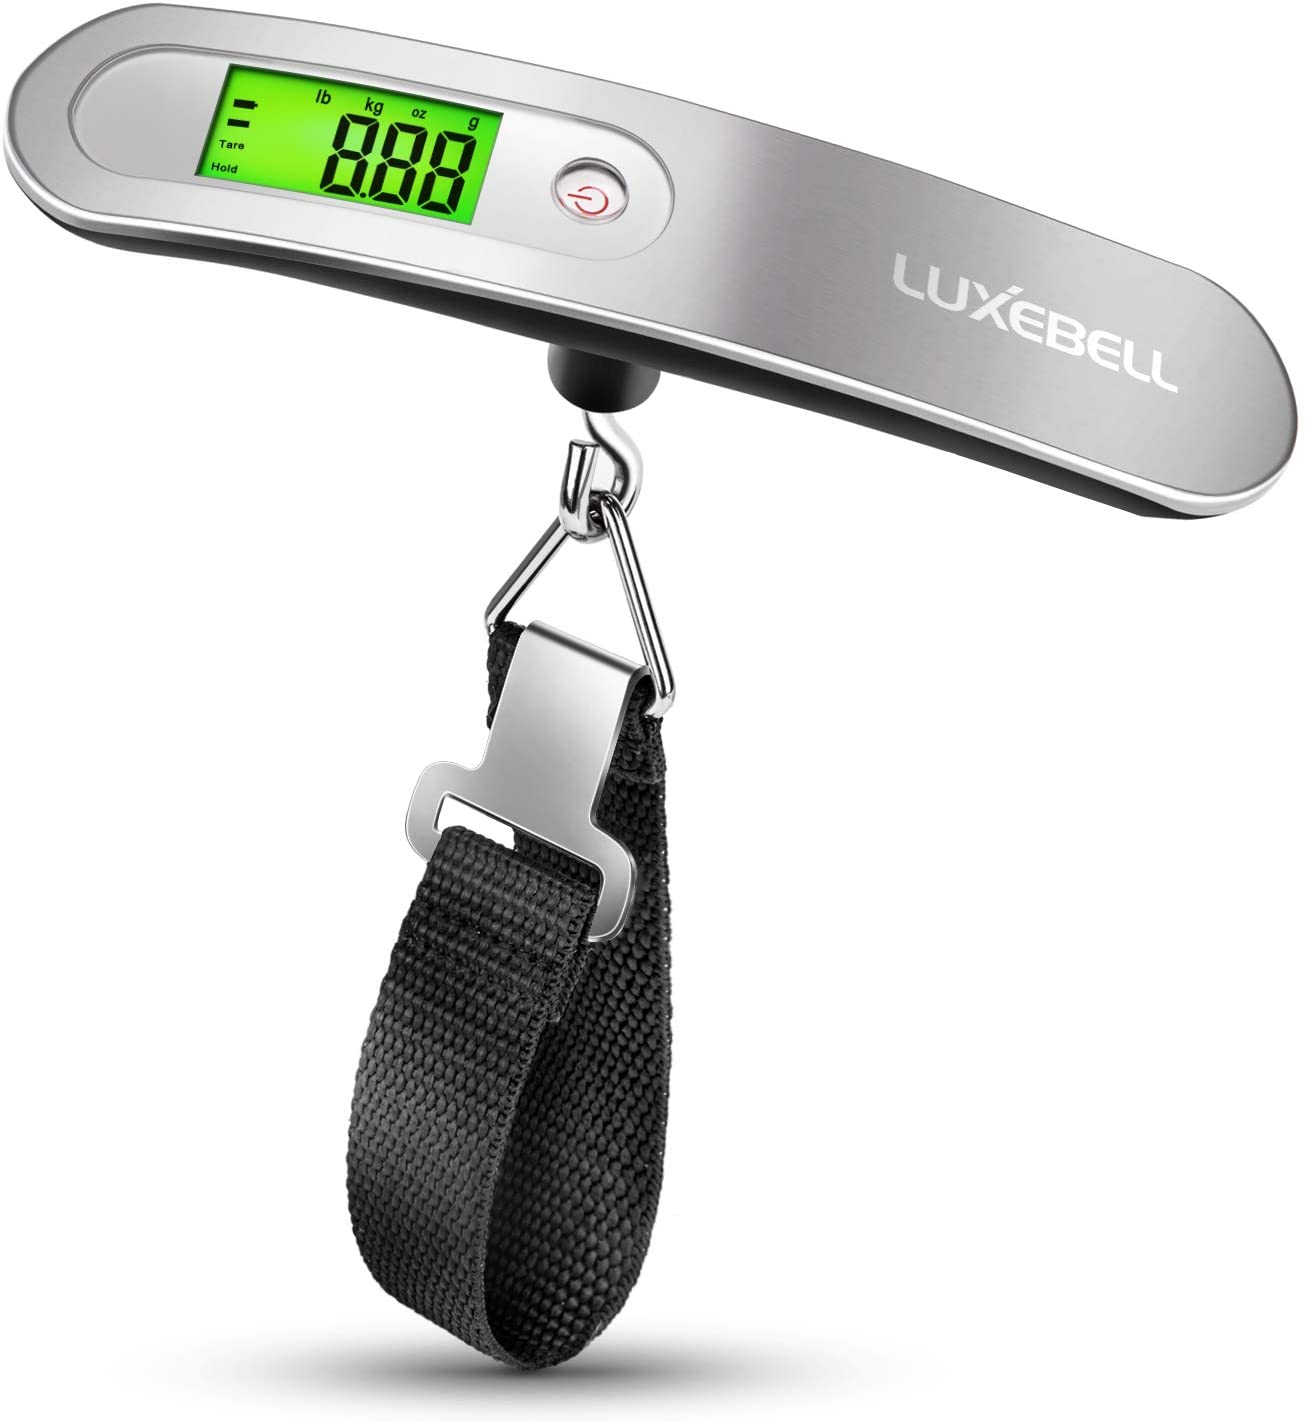 Luxebell Digital Luggage Scale